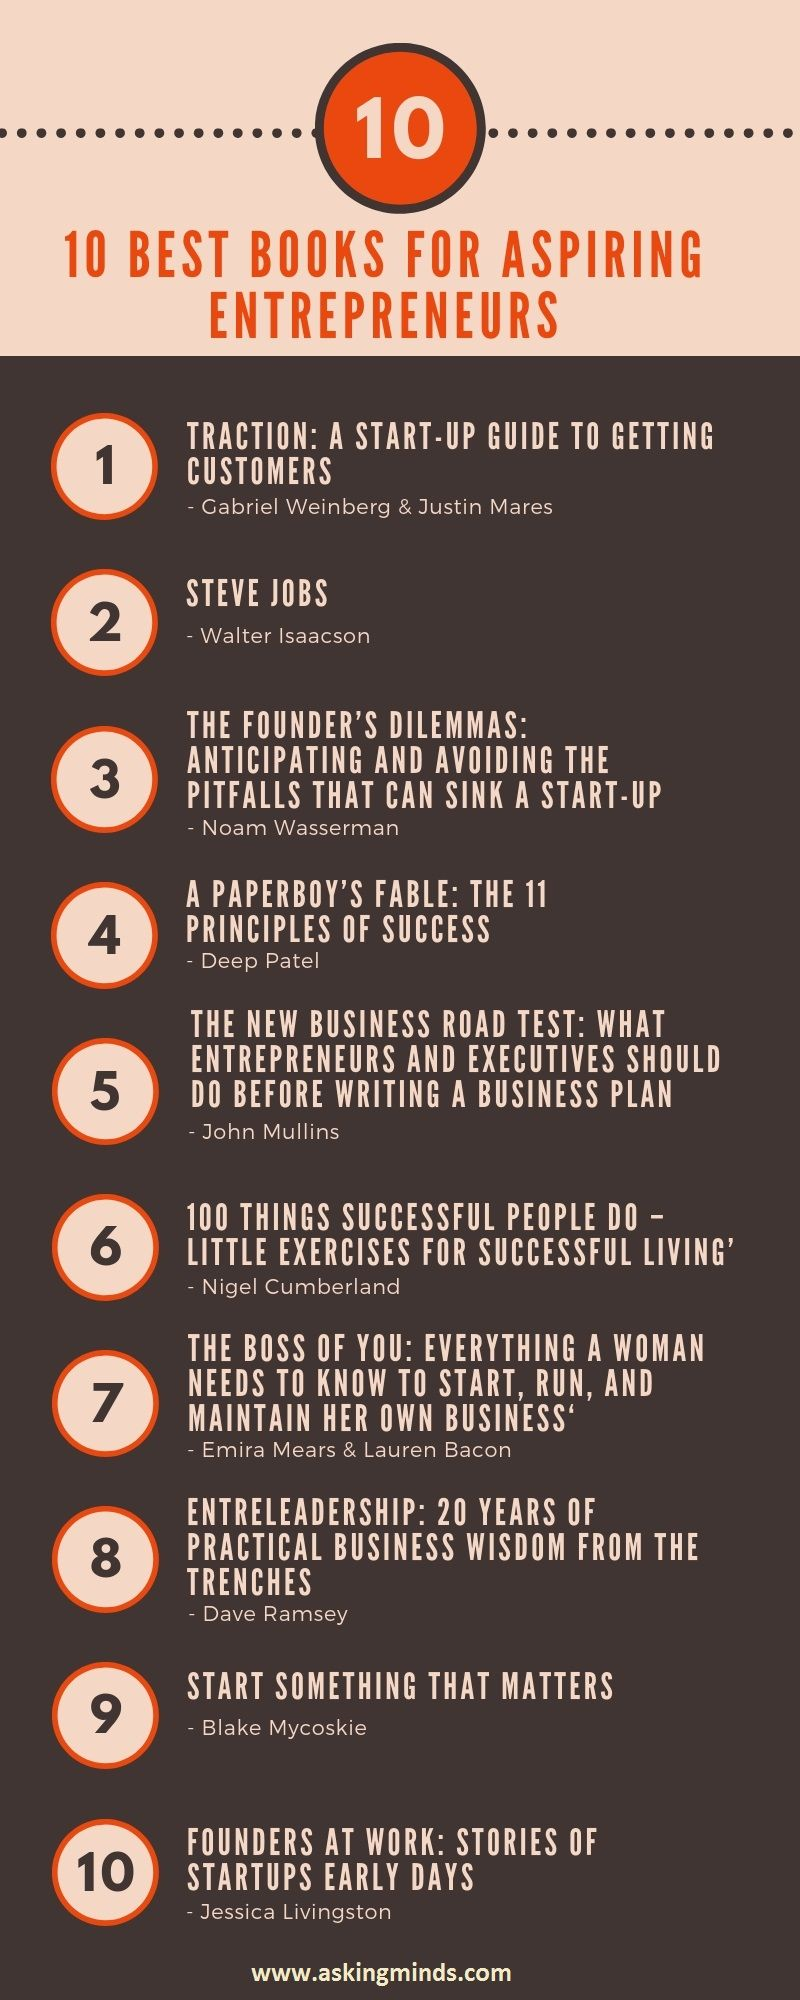 a paperboys fable the 11 principles of success